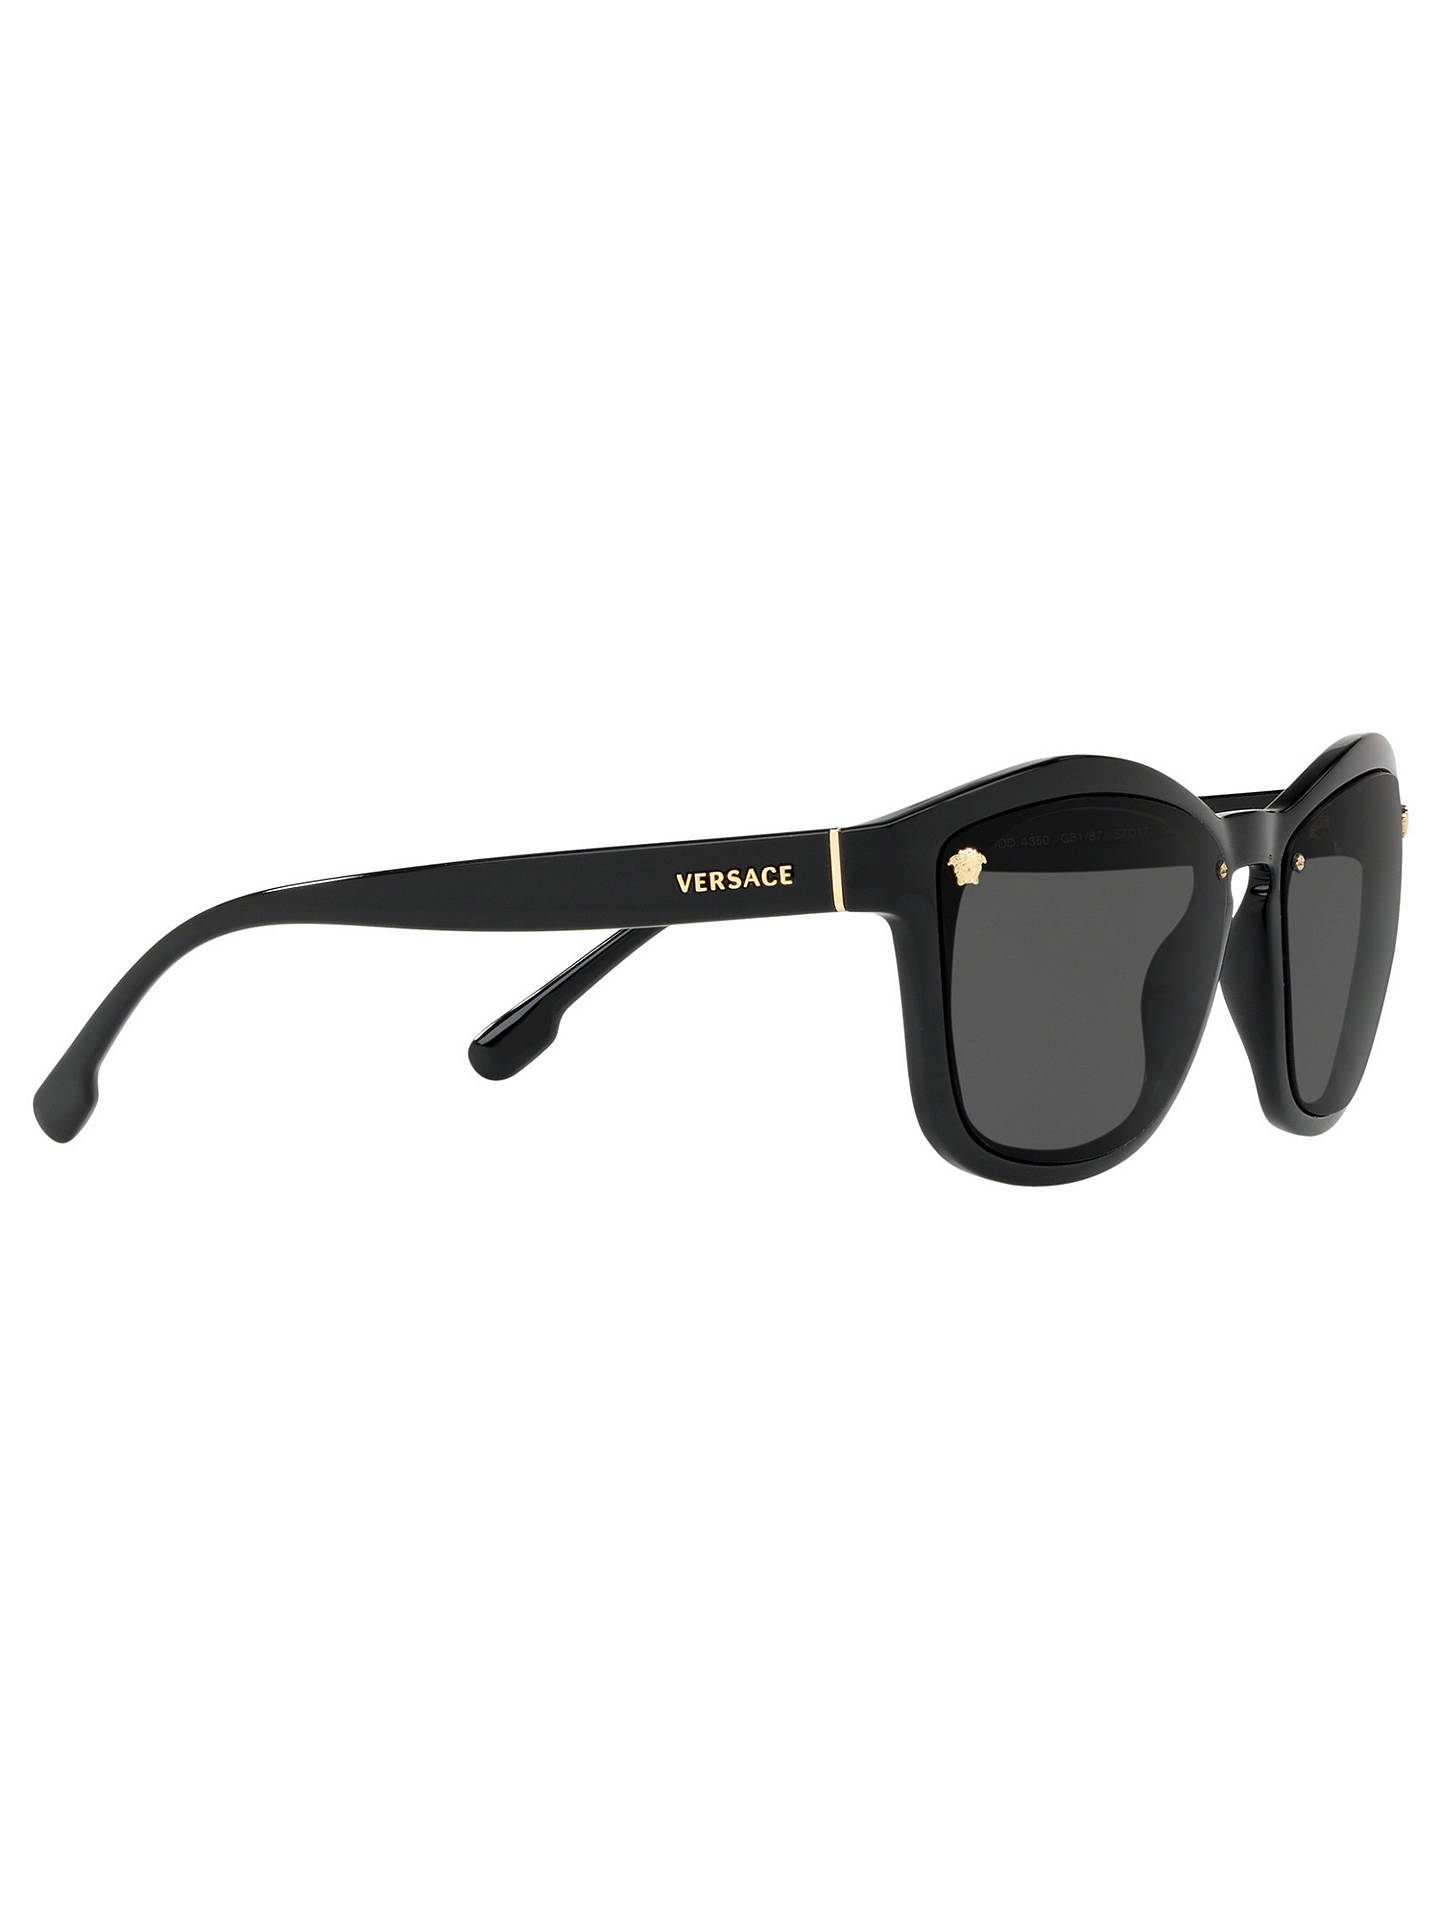 ef6ee0154a837 Versace VE4350 Women s Sunglasses at John Lewis   Partners